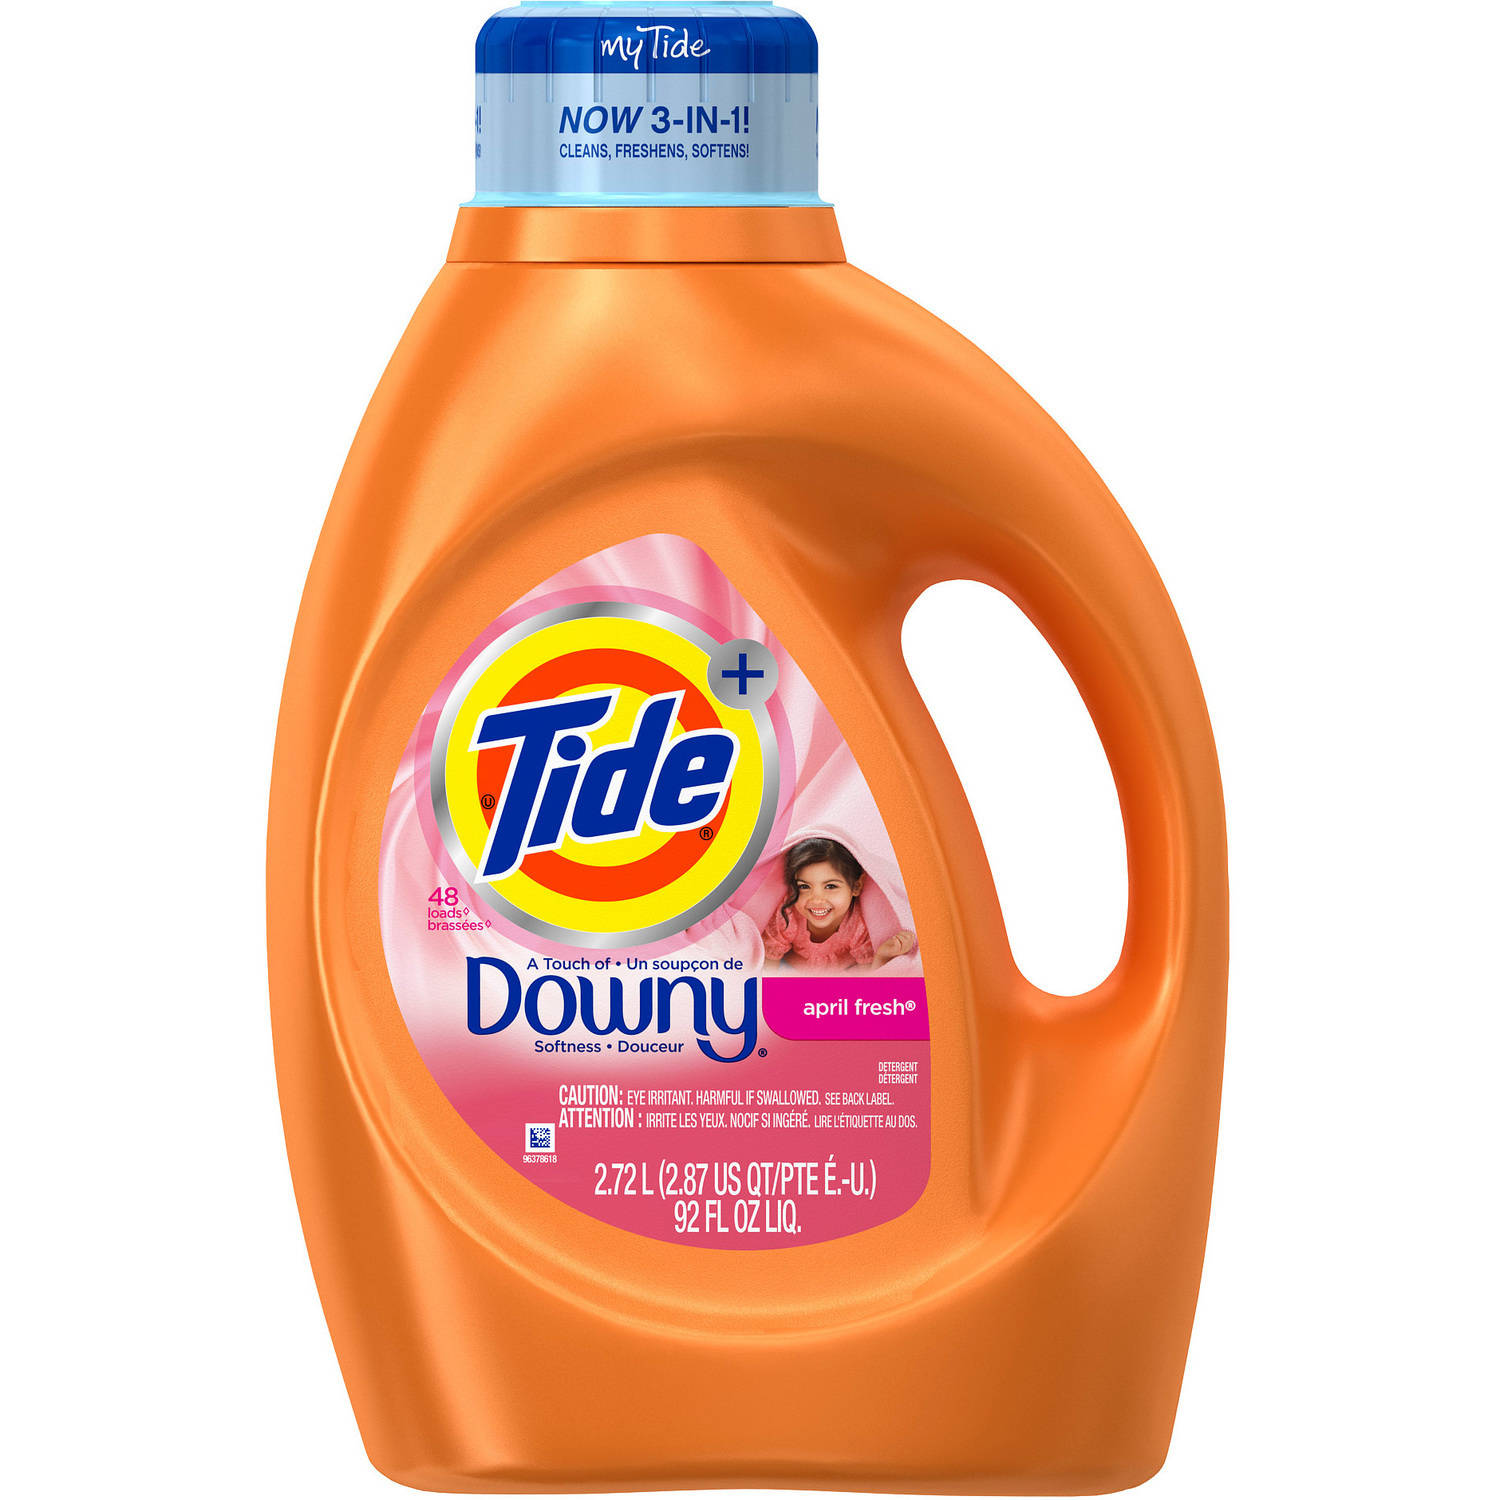 Tide Plus Downy April Fresh Scent Liquid Laundry Detergent, 48 Loads 92 oz